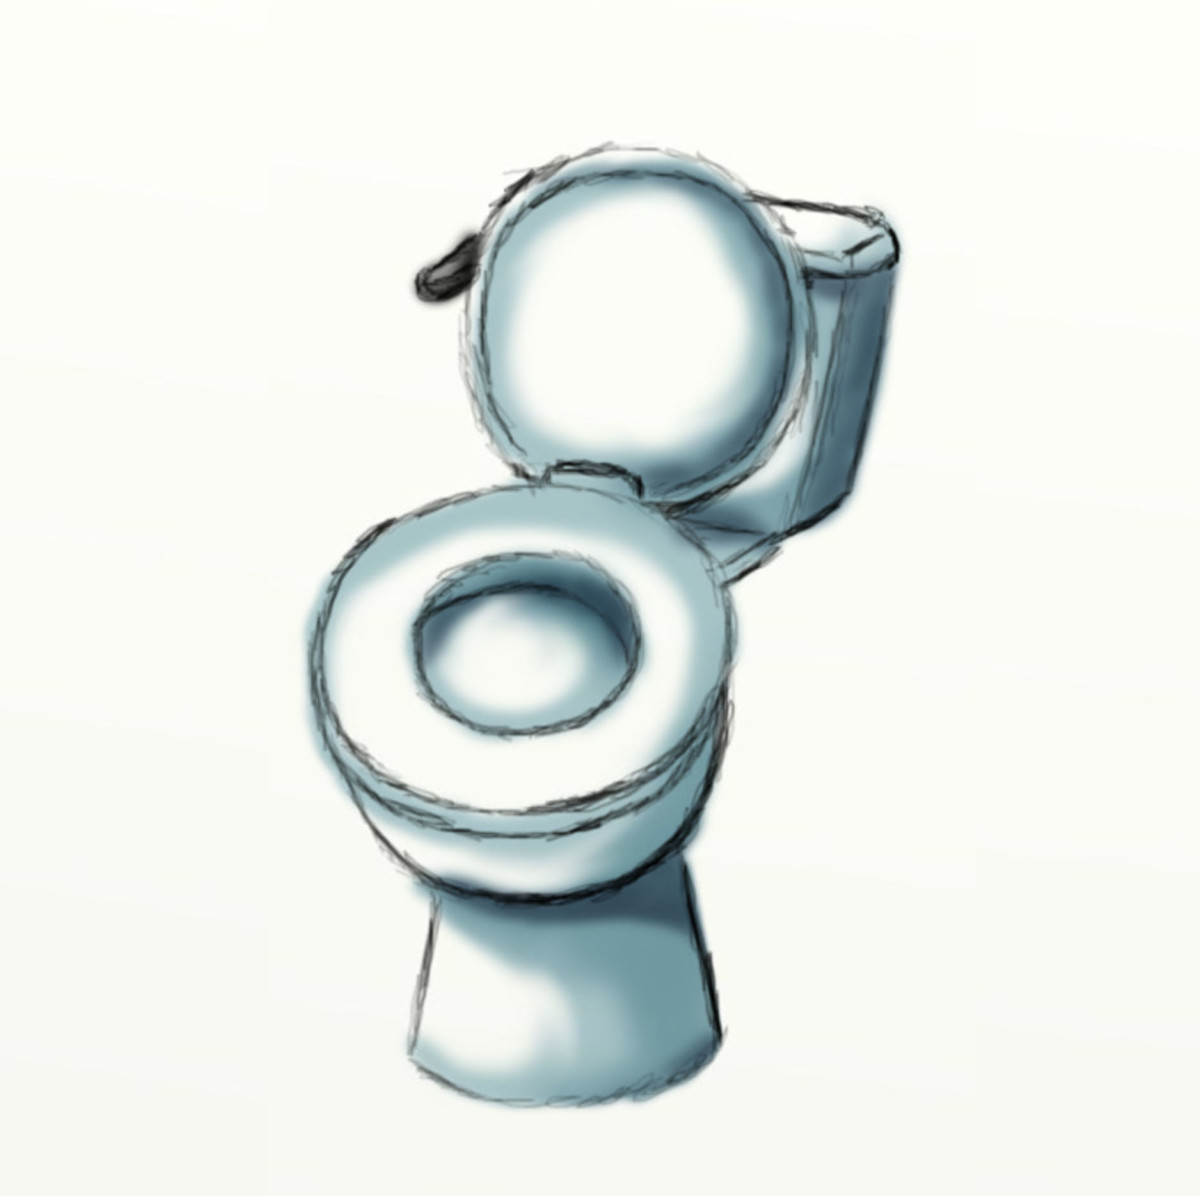 How to draw a toilet seat